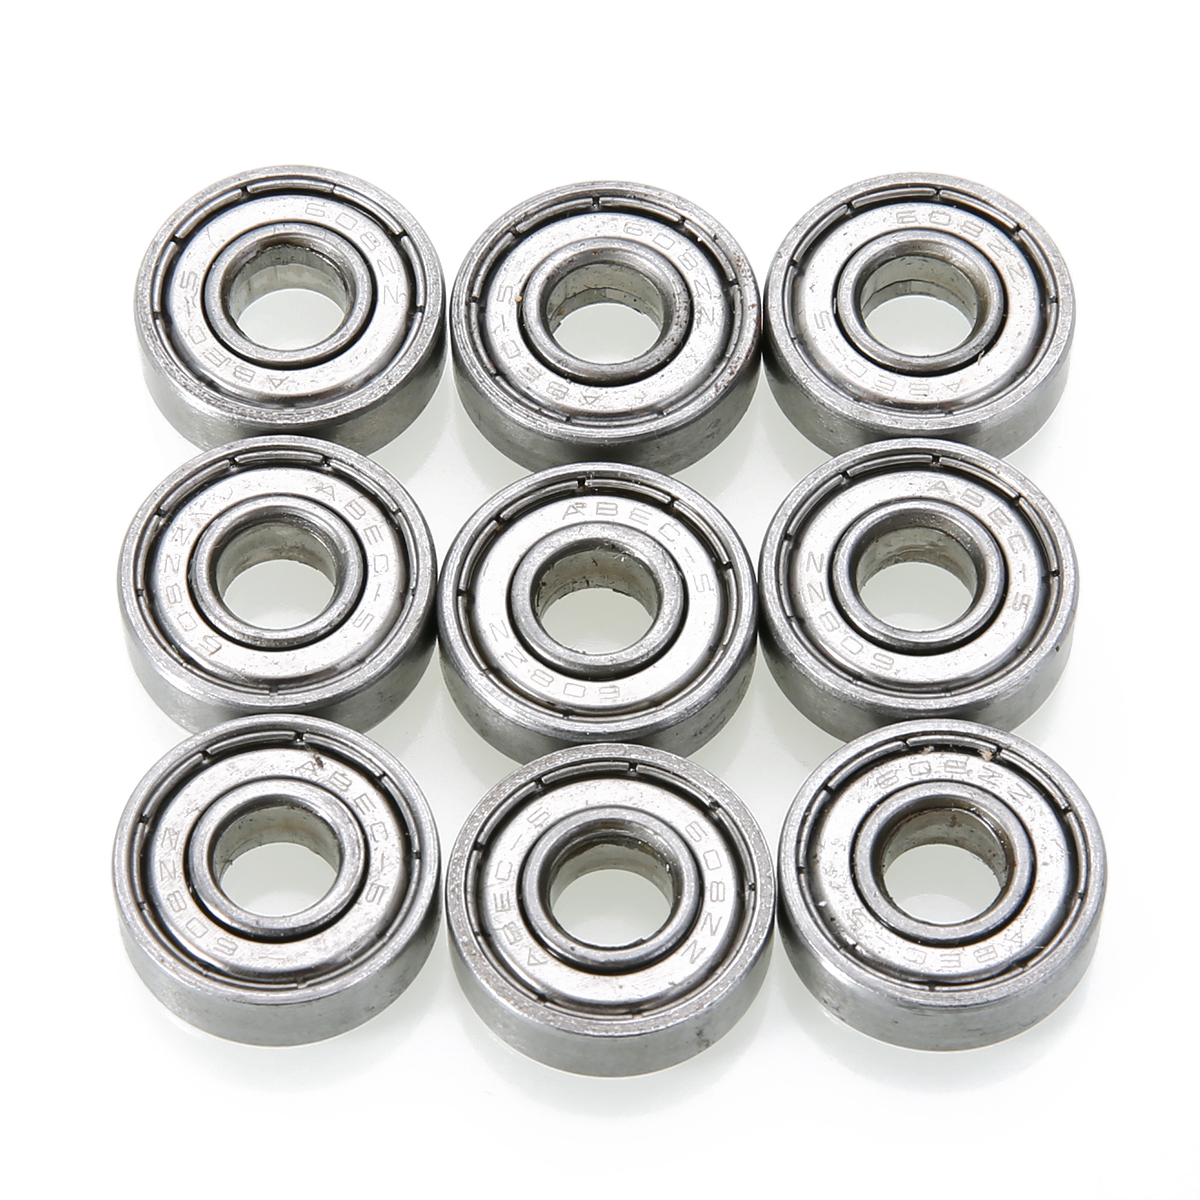 10pcs 608zz Deep Groove Bearing Steel Ball Bearings With Grease For Skateboard Roller Blade Scooter Inline Skating Mayitr 50pcs 608 stainless steel black ceramic ball bearing for handspinner drift board skateboard finger gyro toy hardware accessories